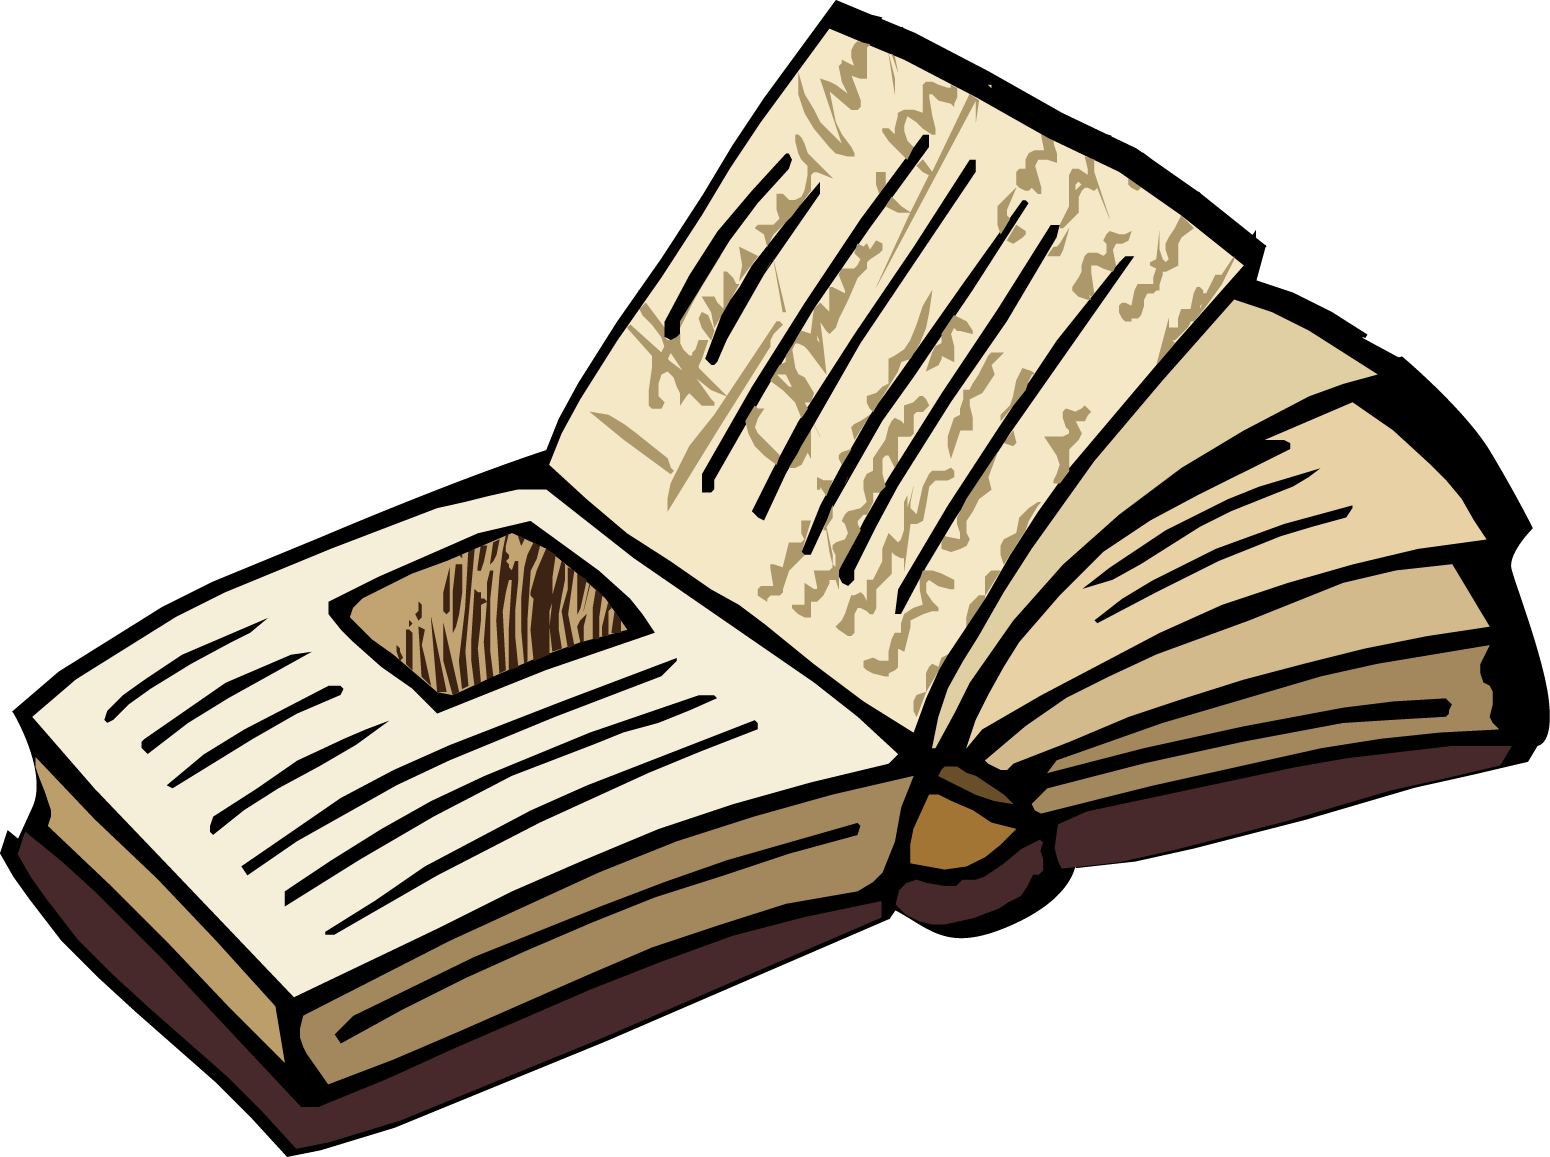 Old Book Cover Png : Clip art old book cover clipart suggest